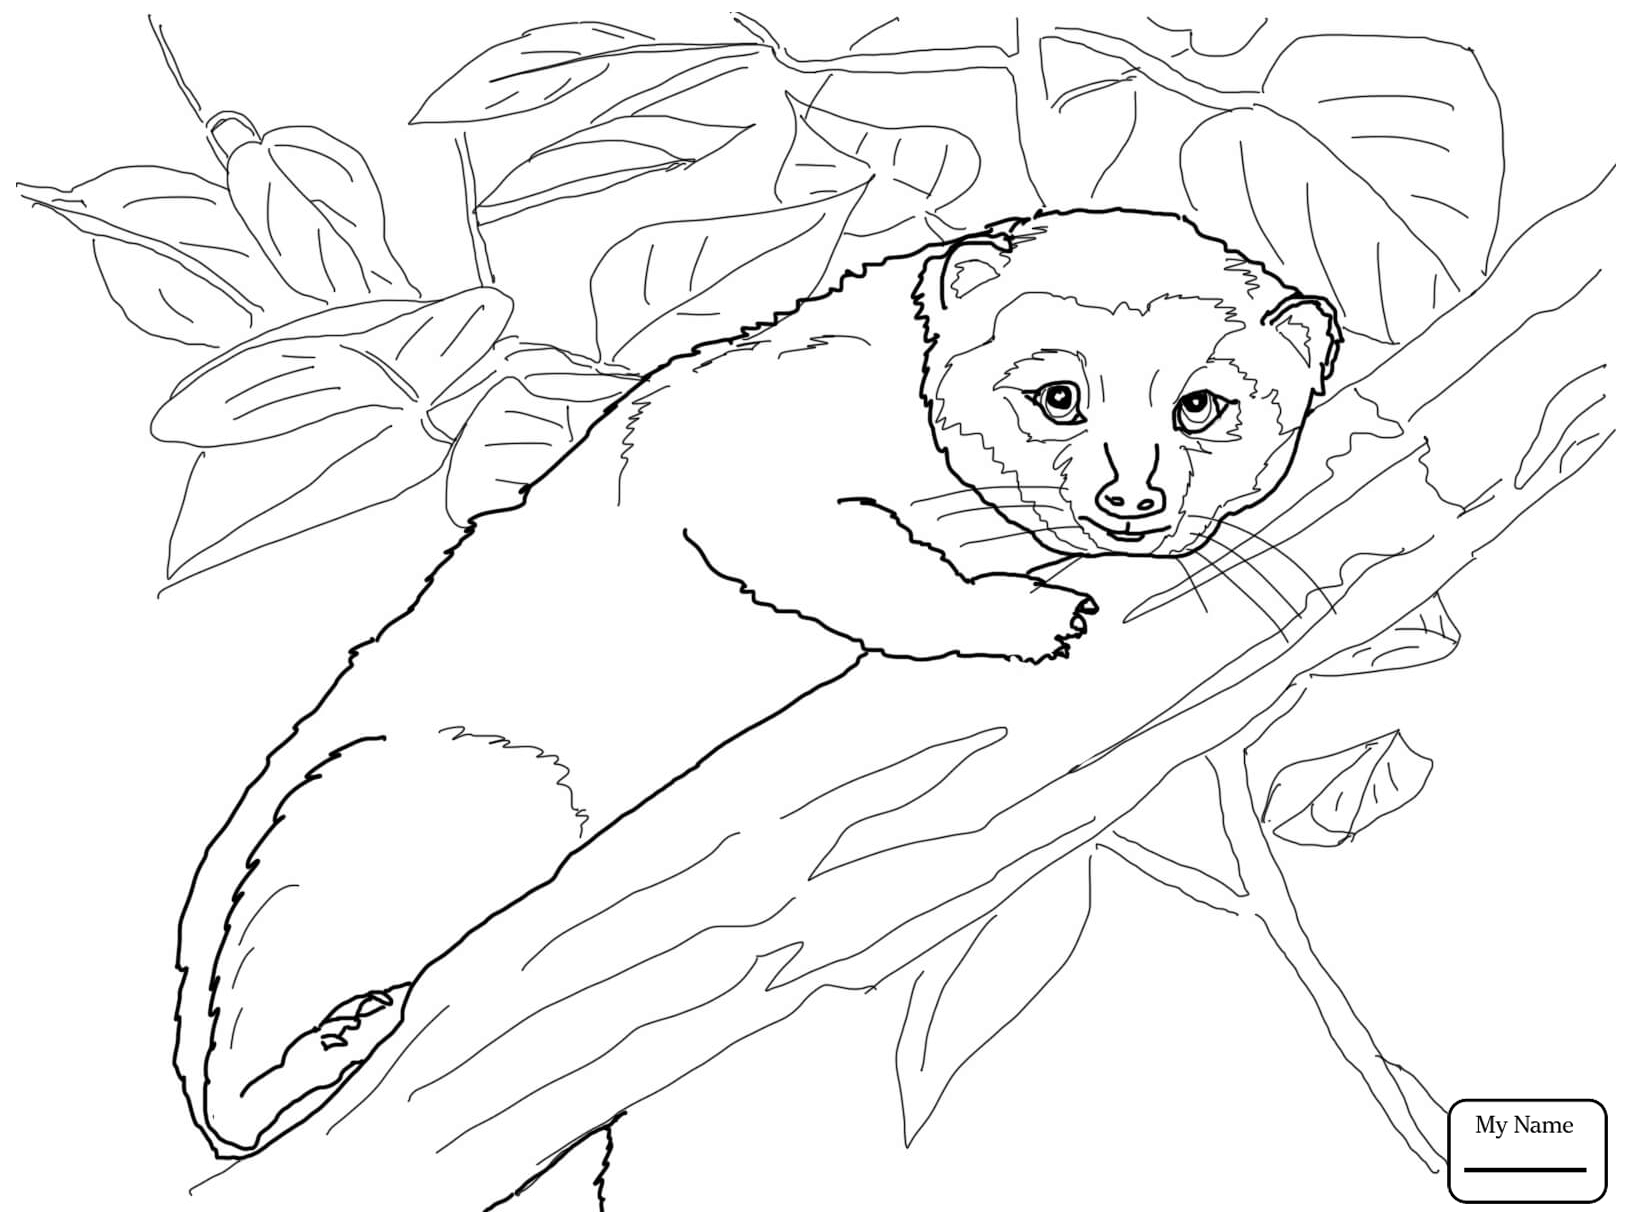 raccoon coloring pictures cute raccoon drawing at getdrawings free download pictures coloring raccoon